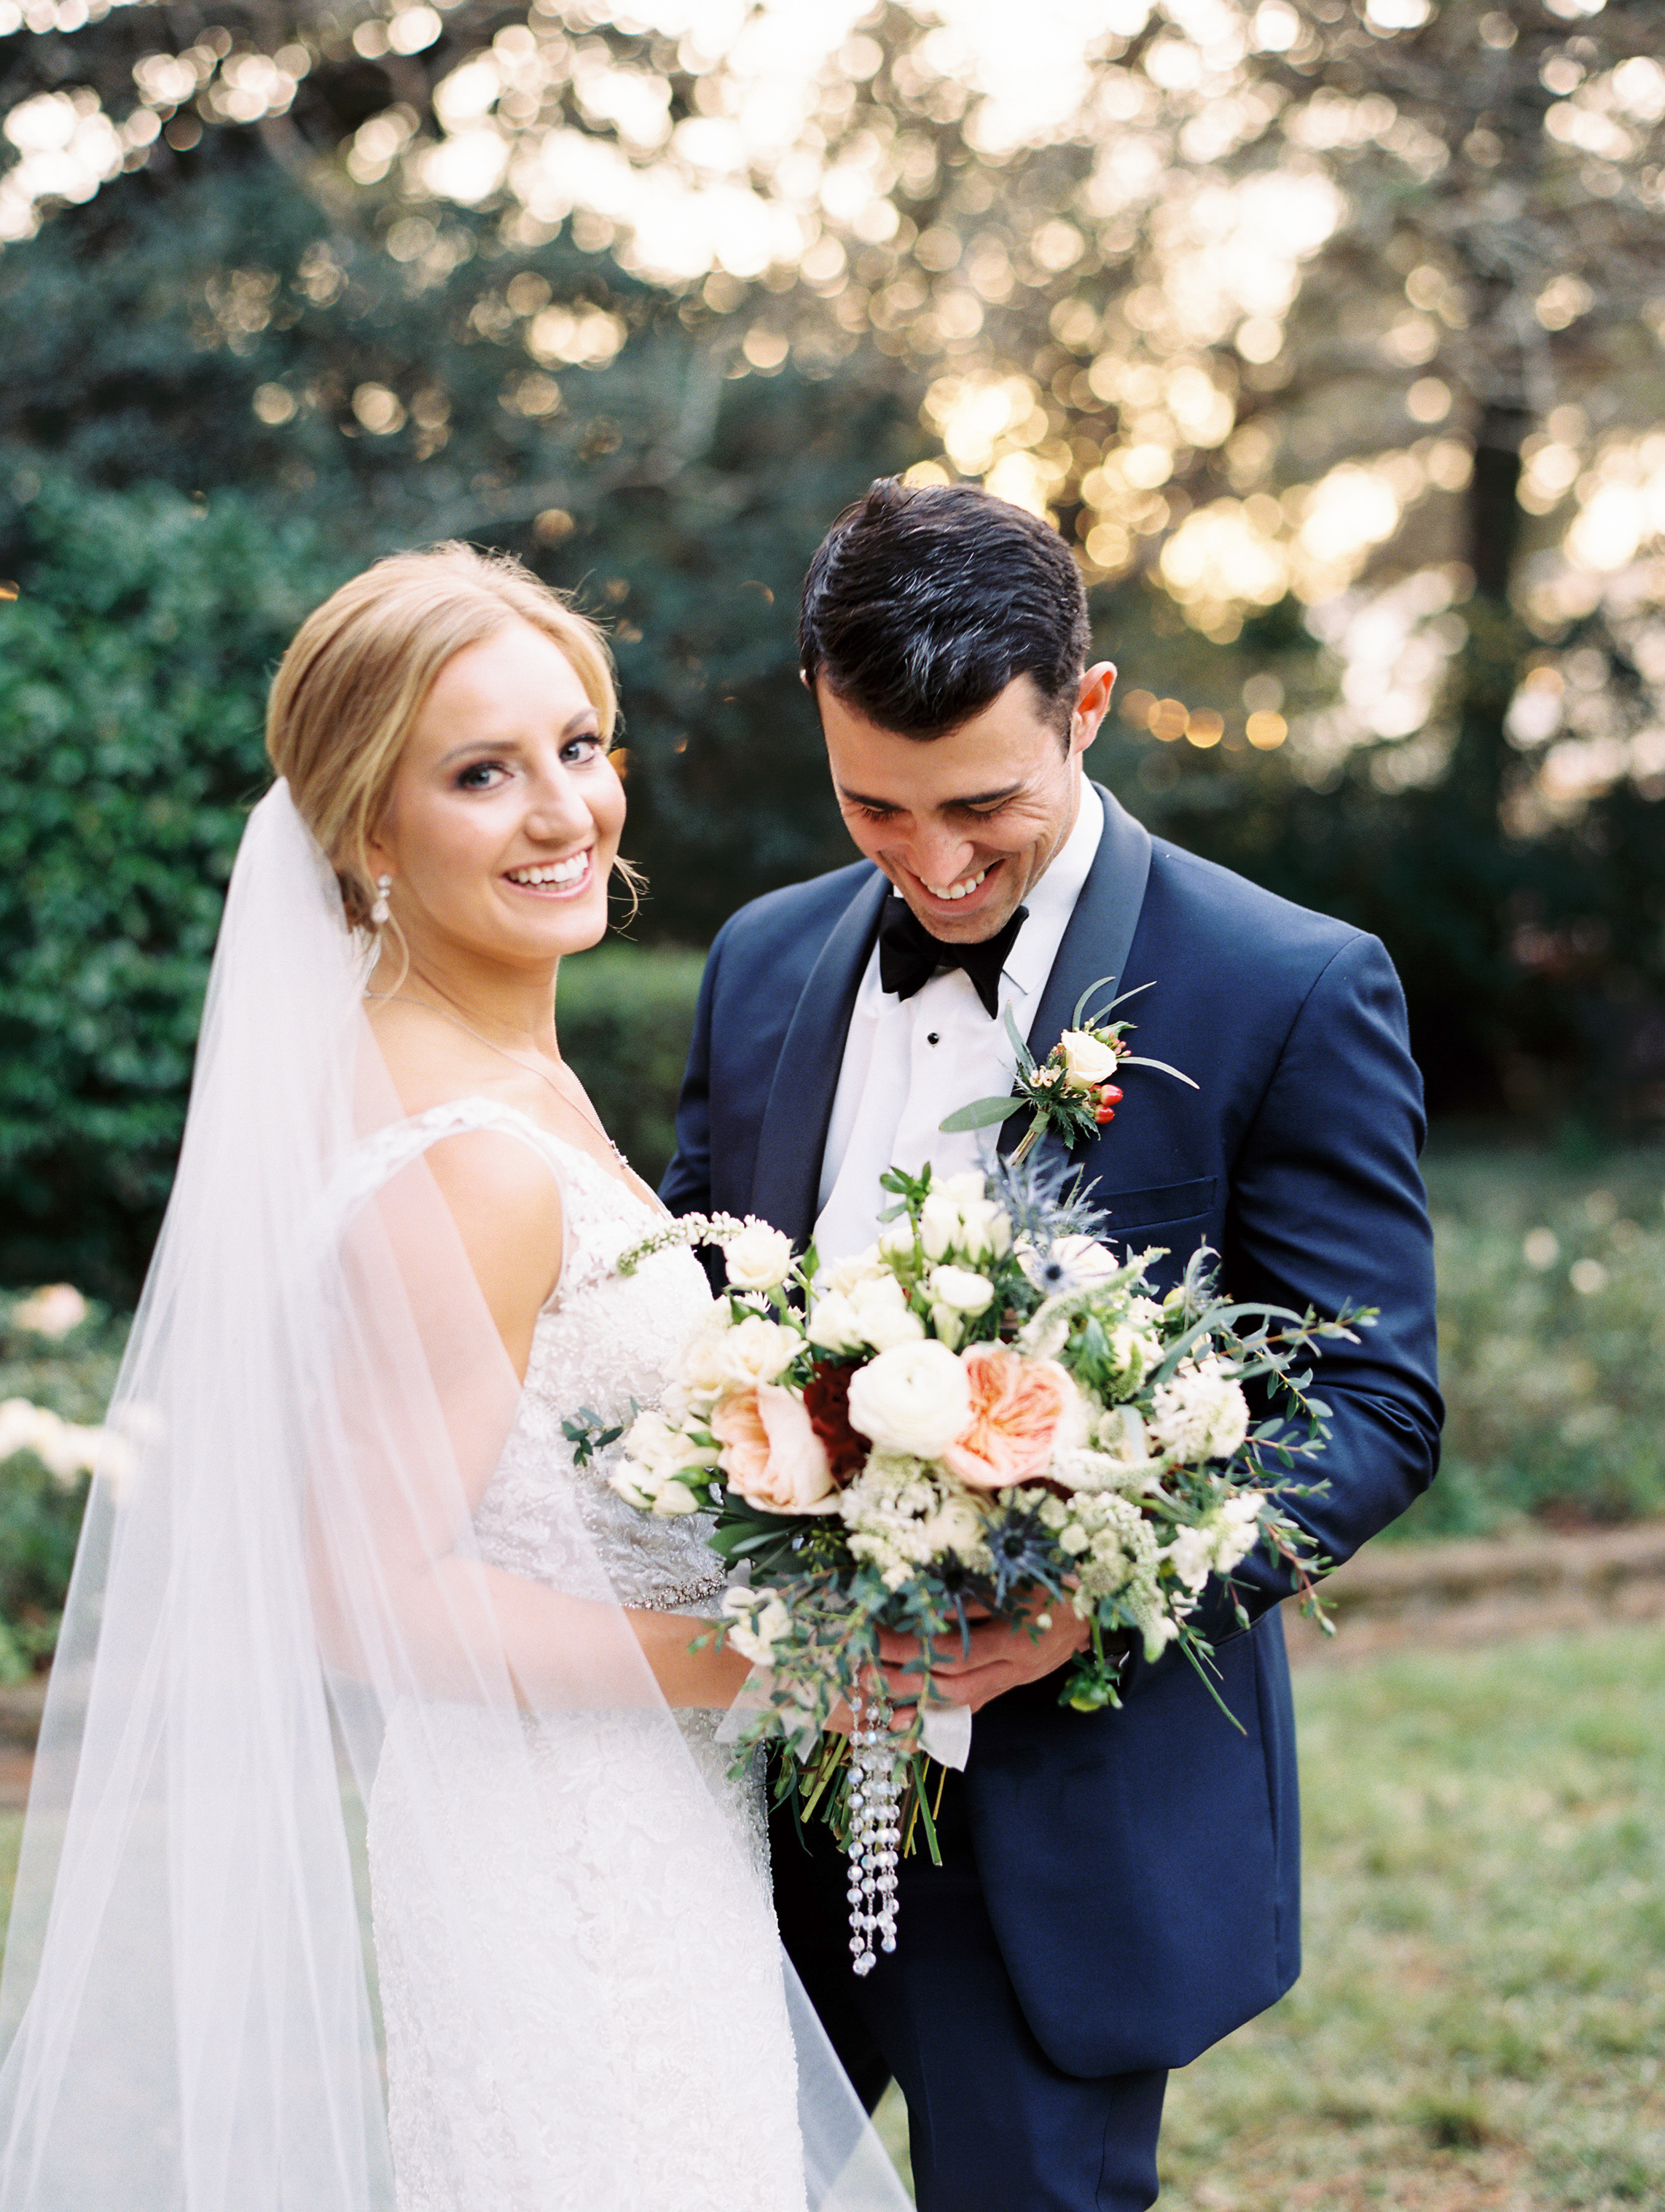 Southern Fete, Southern Wedding, Peregrin's Florist, Bride and Groom first look, Sarah Beth Photography